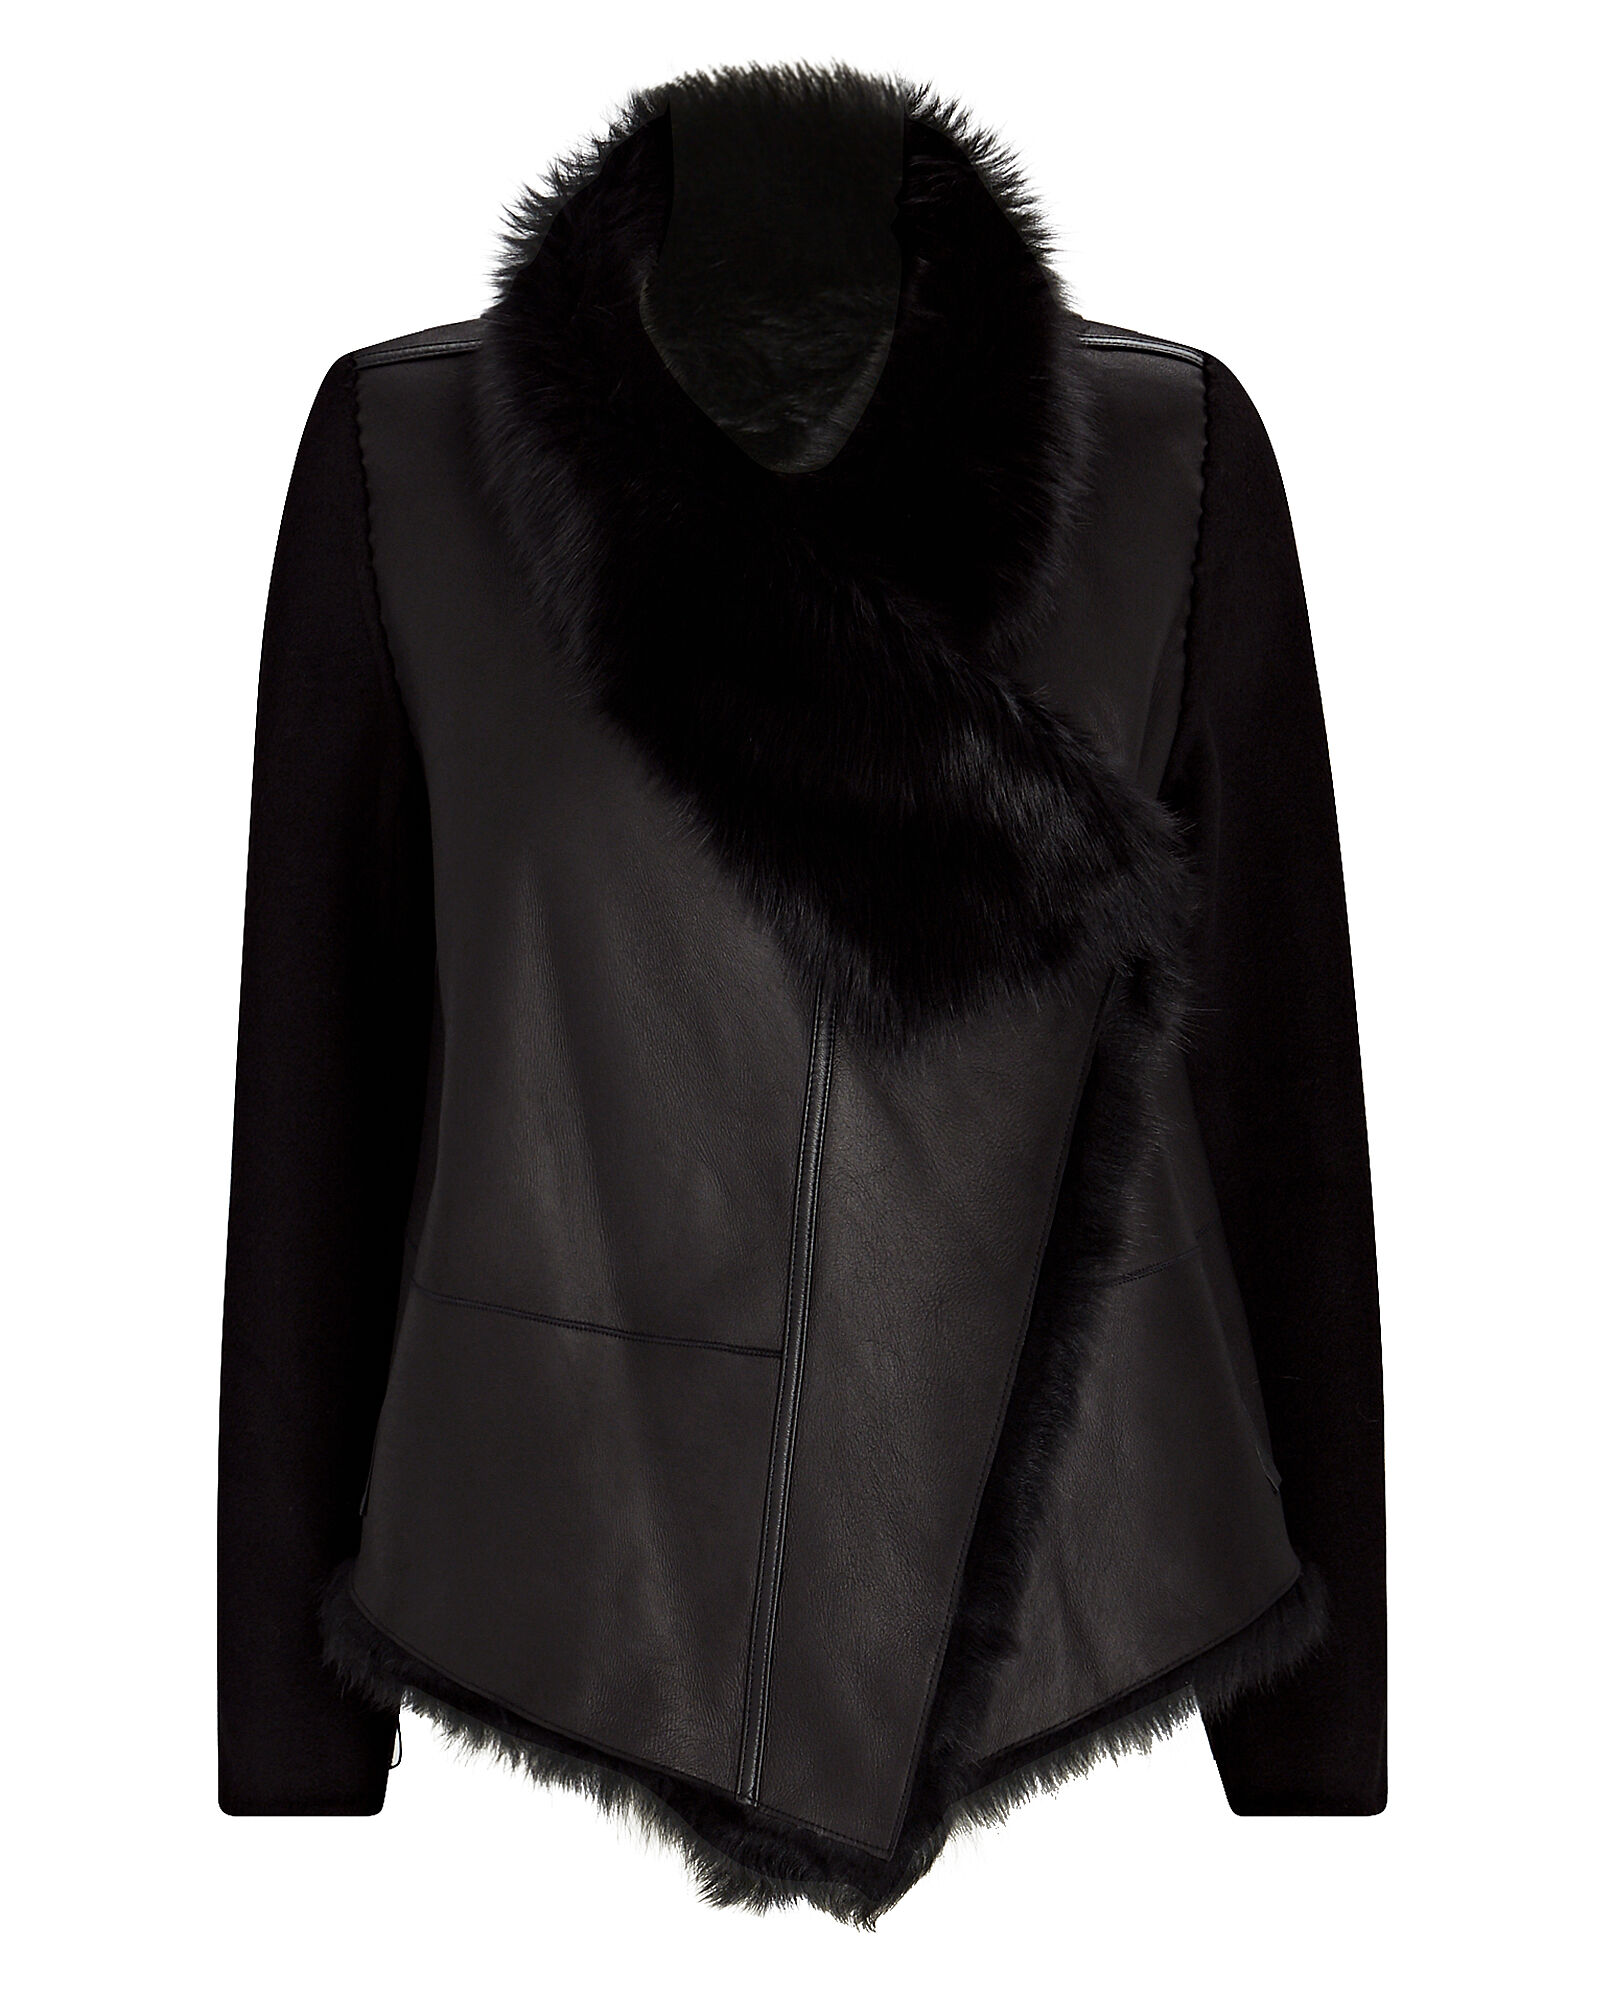 Reversible Wool-Trimmed Shearling Jacket, BLACK, hi-res